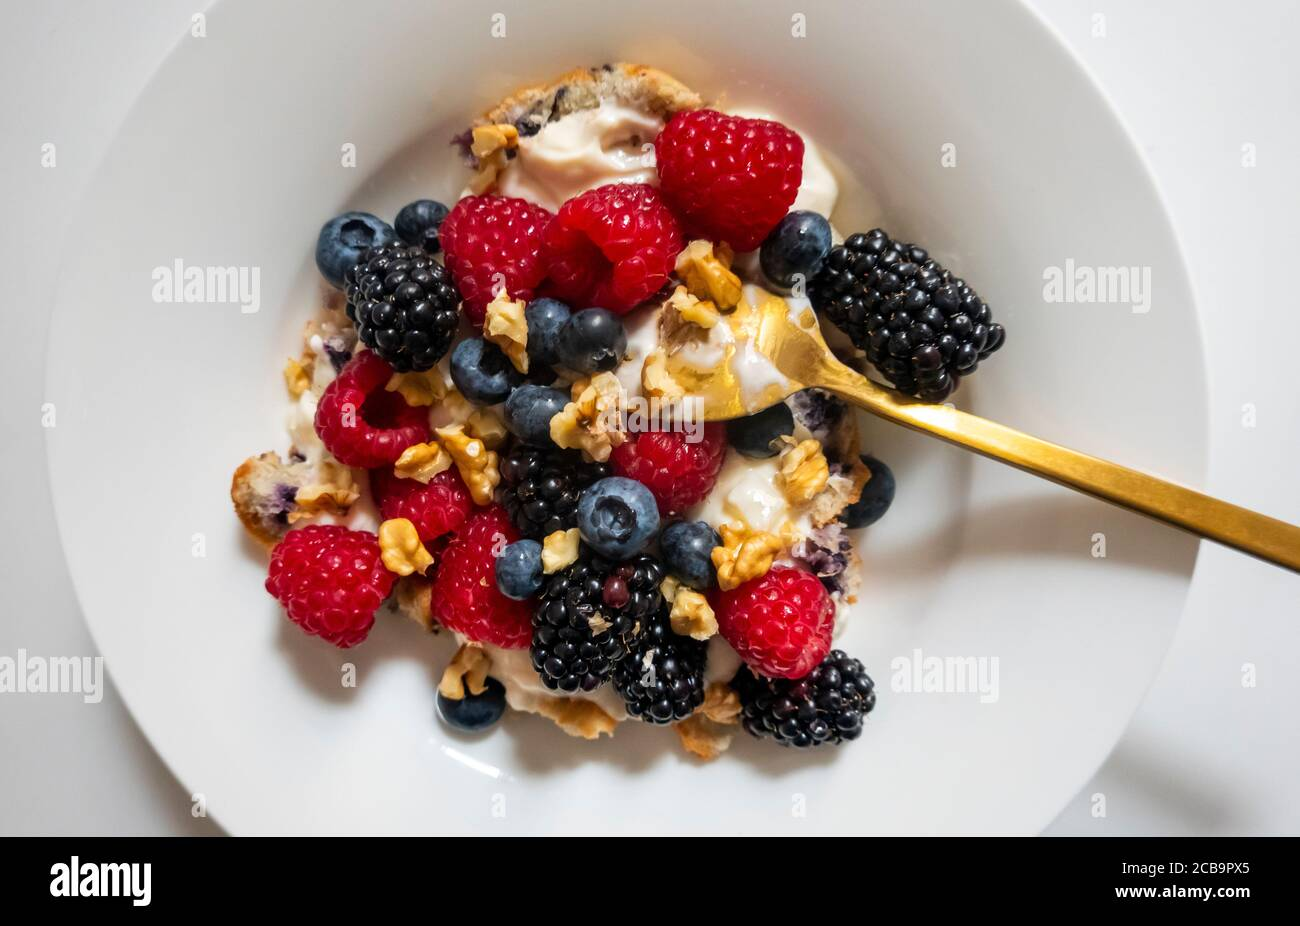 a-healthy-breakfast-of-berries-walnuts-y